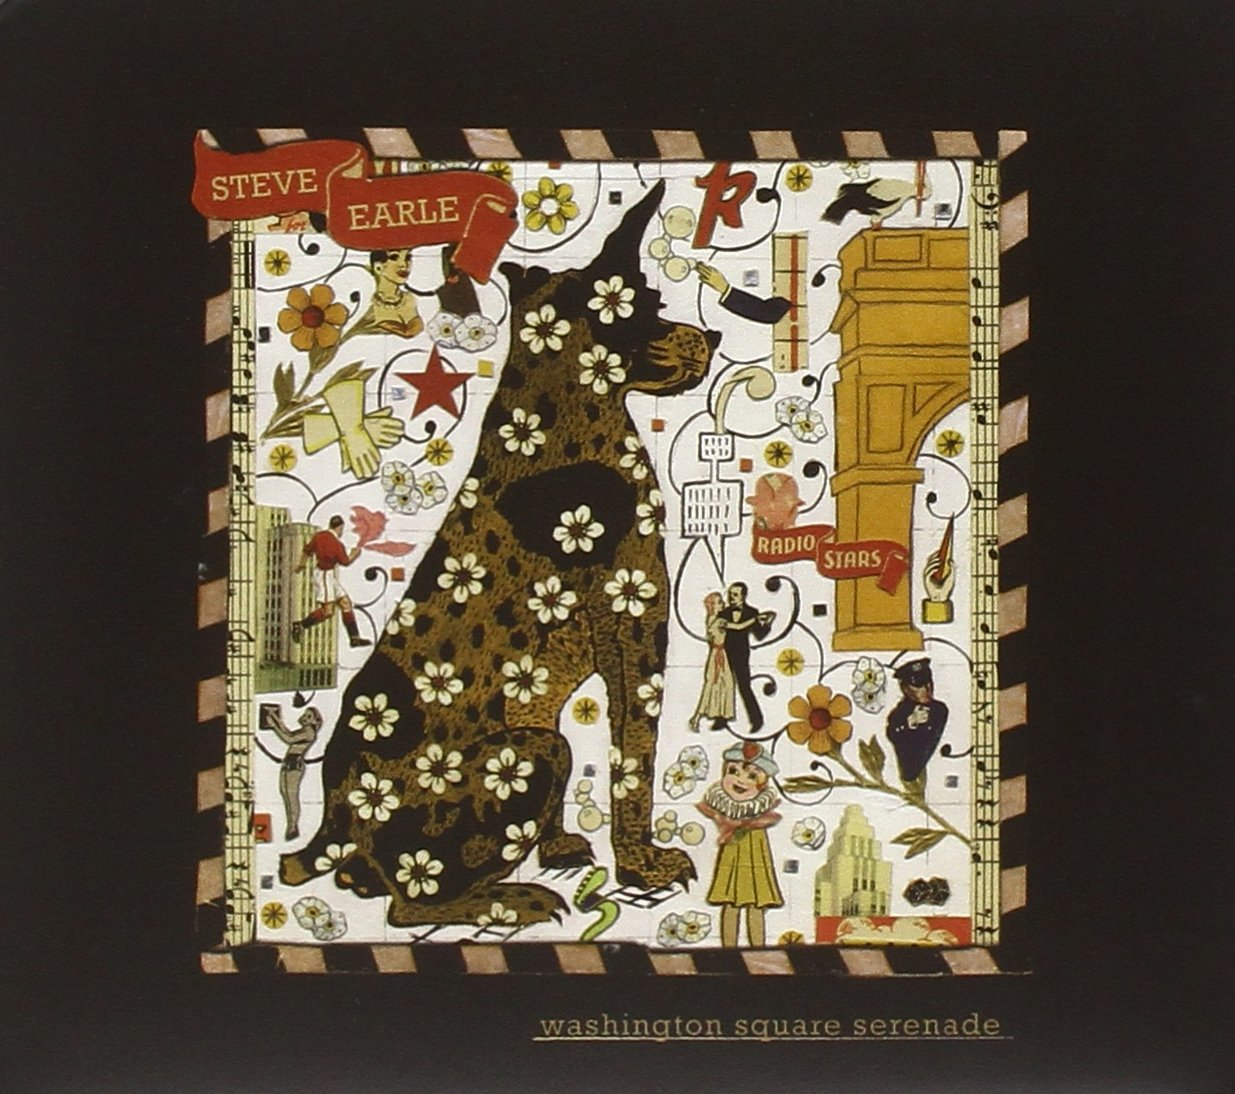 Steve Earle - Washington Square Serenade - Amazon.com Music